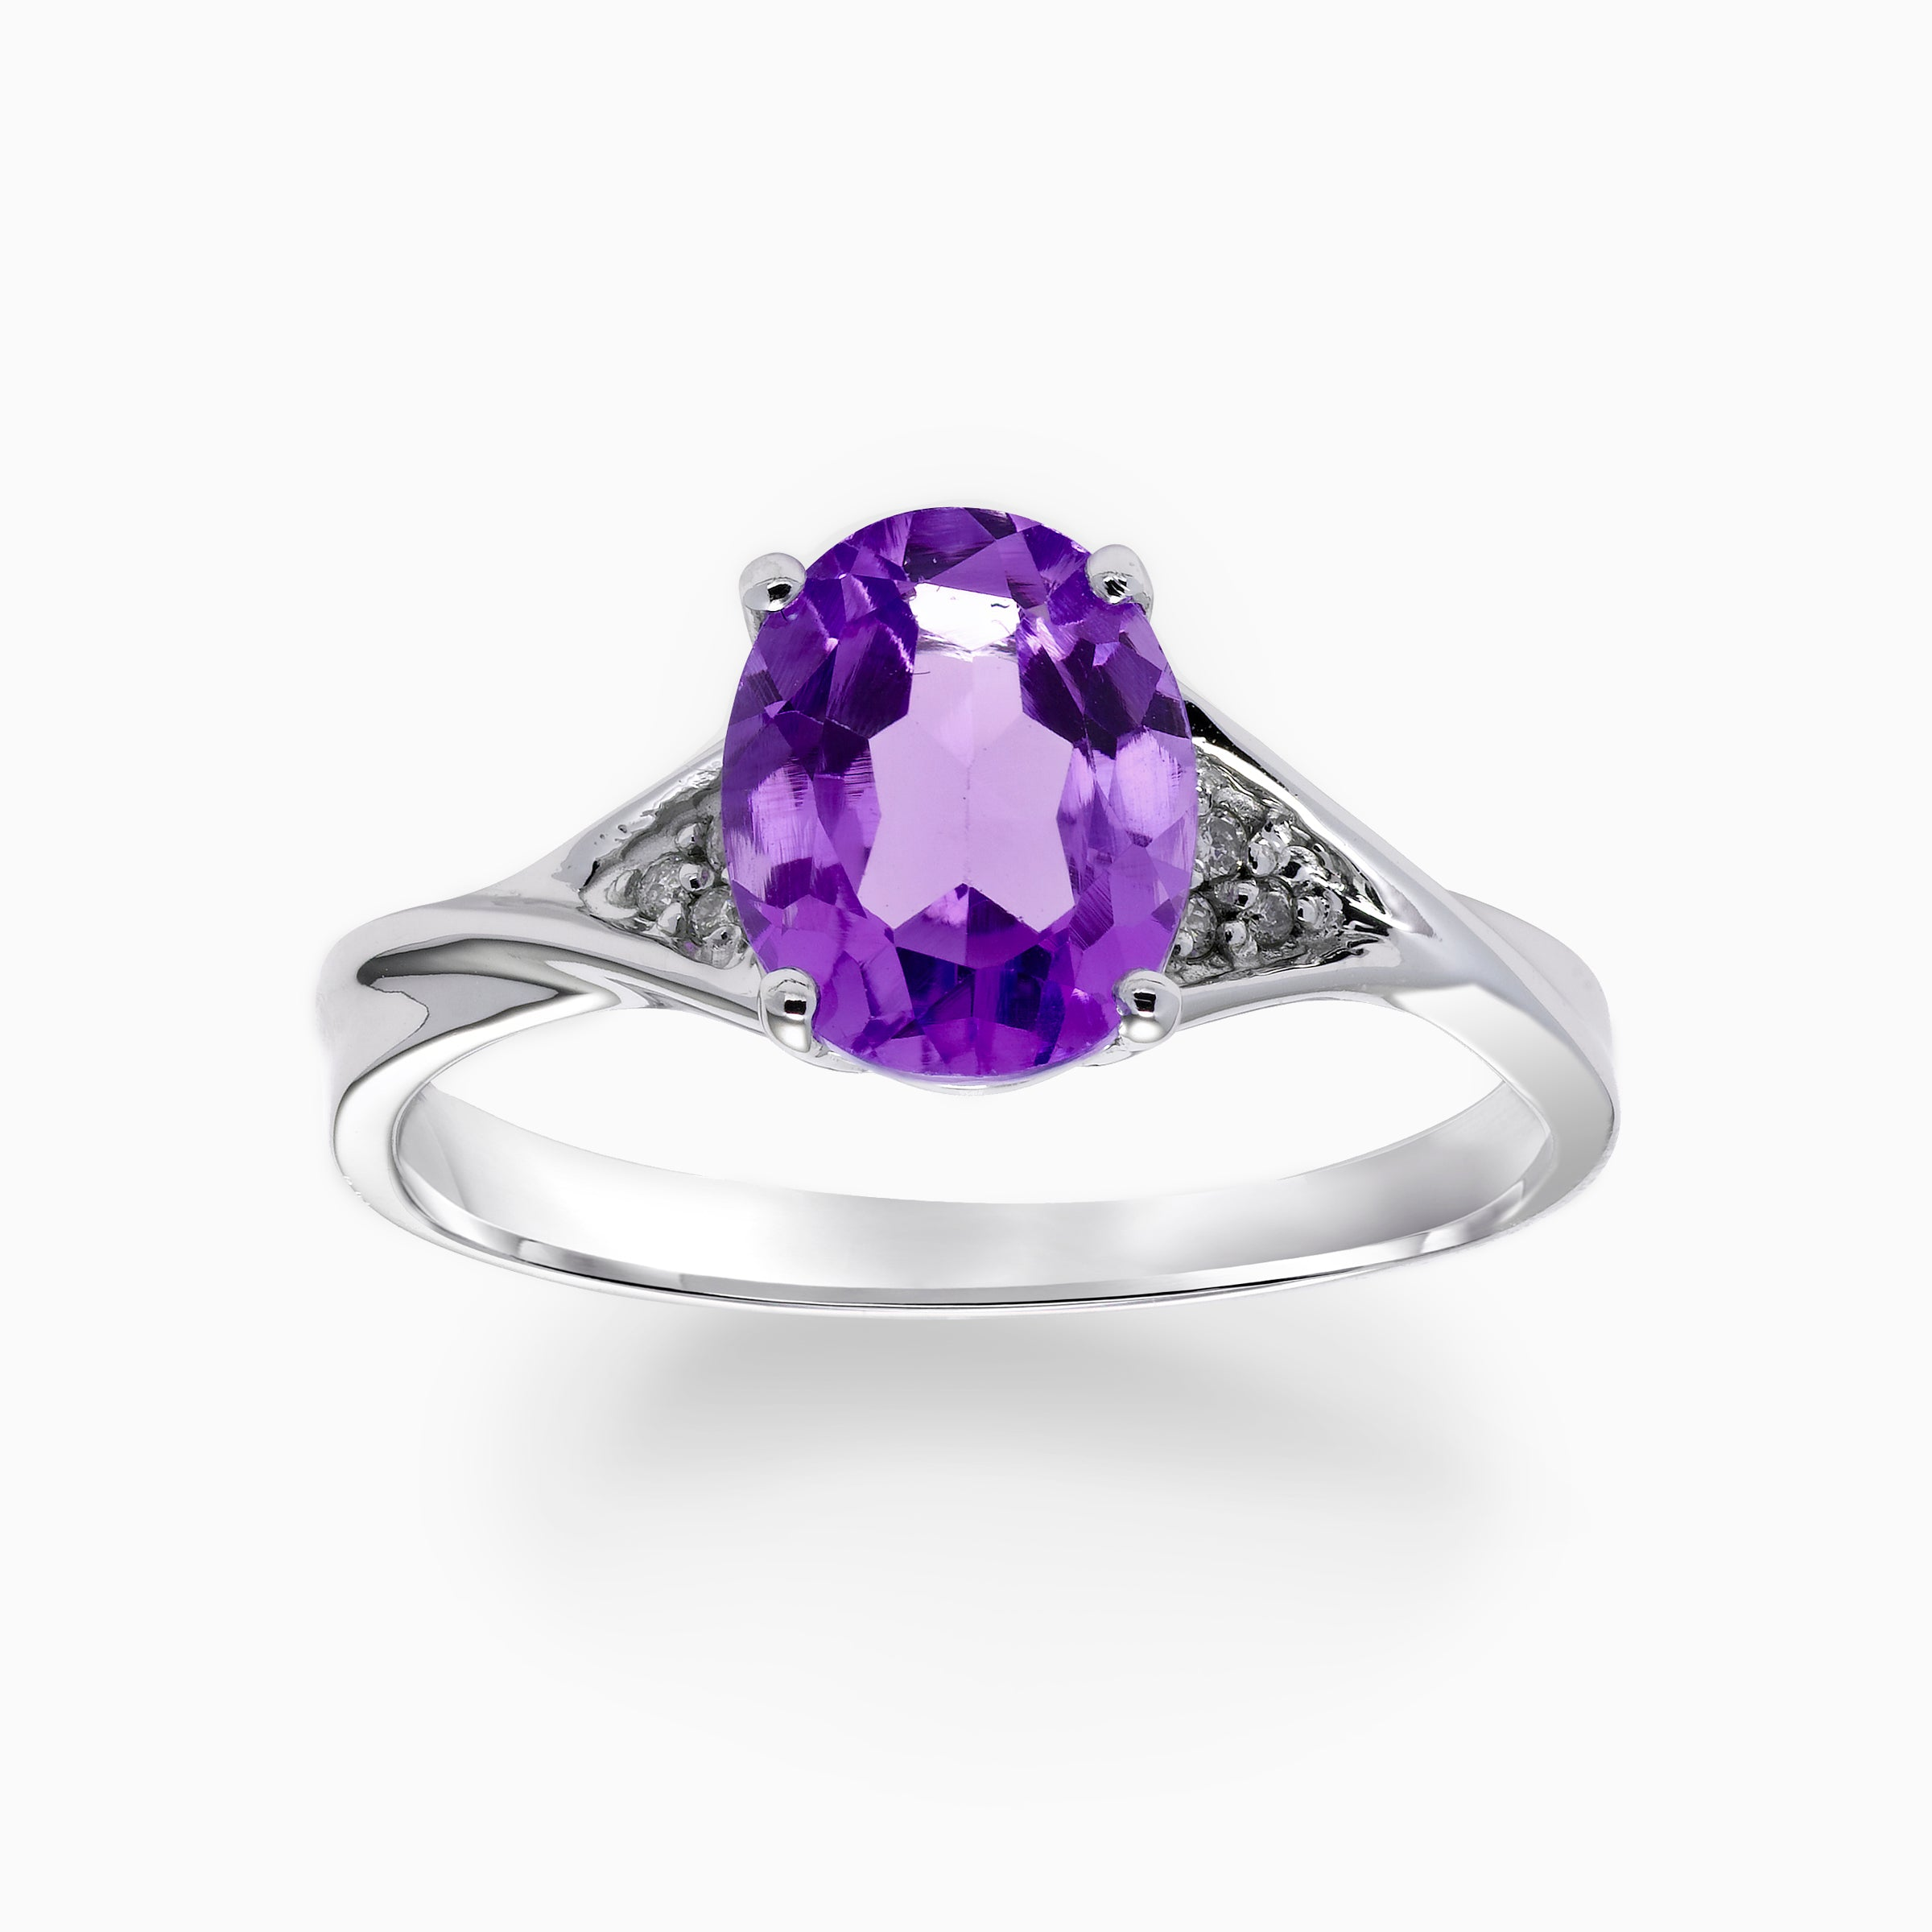 Oval Amethyst Ring with Diamonds, 14K White Gold